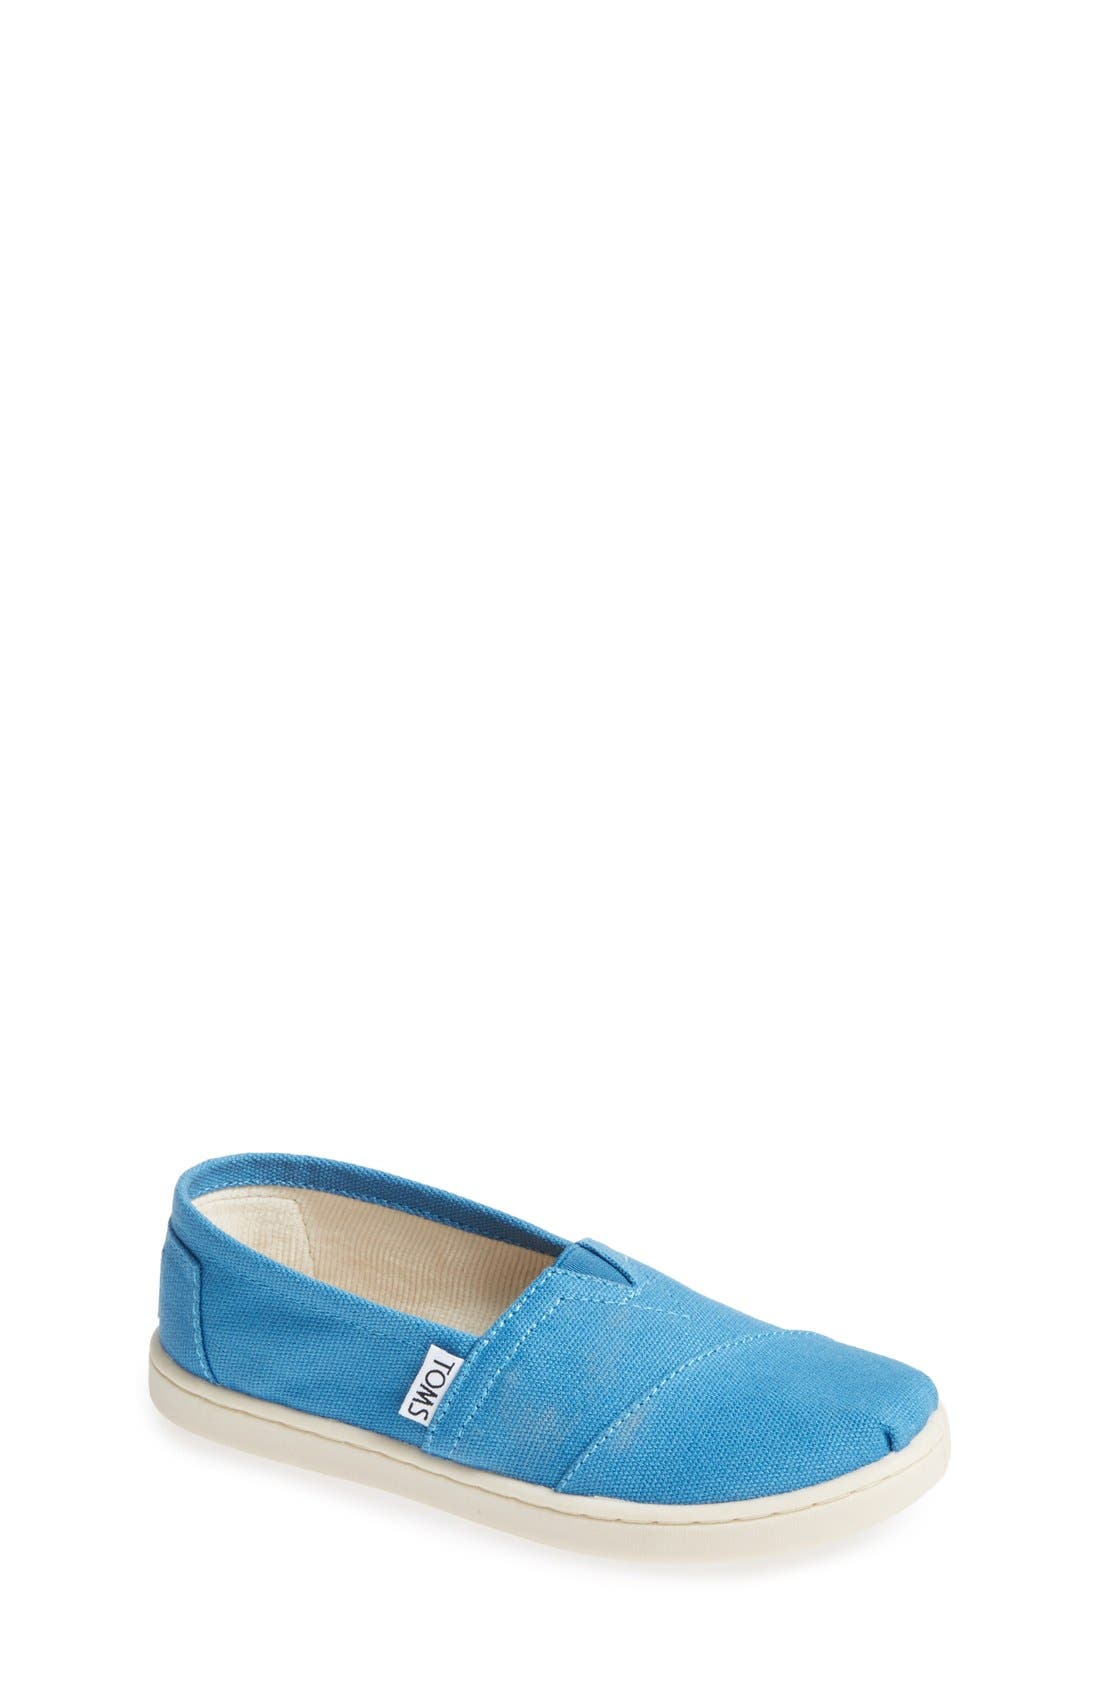 Main Image - TOMS 'Classic - Youth' Canvas Slip-On (Toddler, Little Kid & Big Kid)